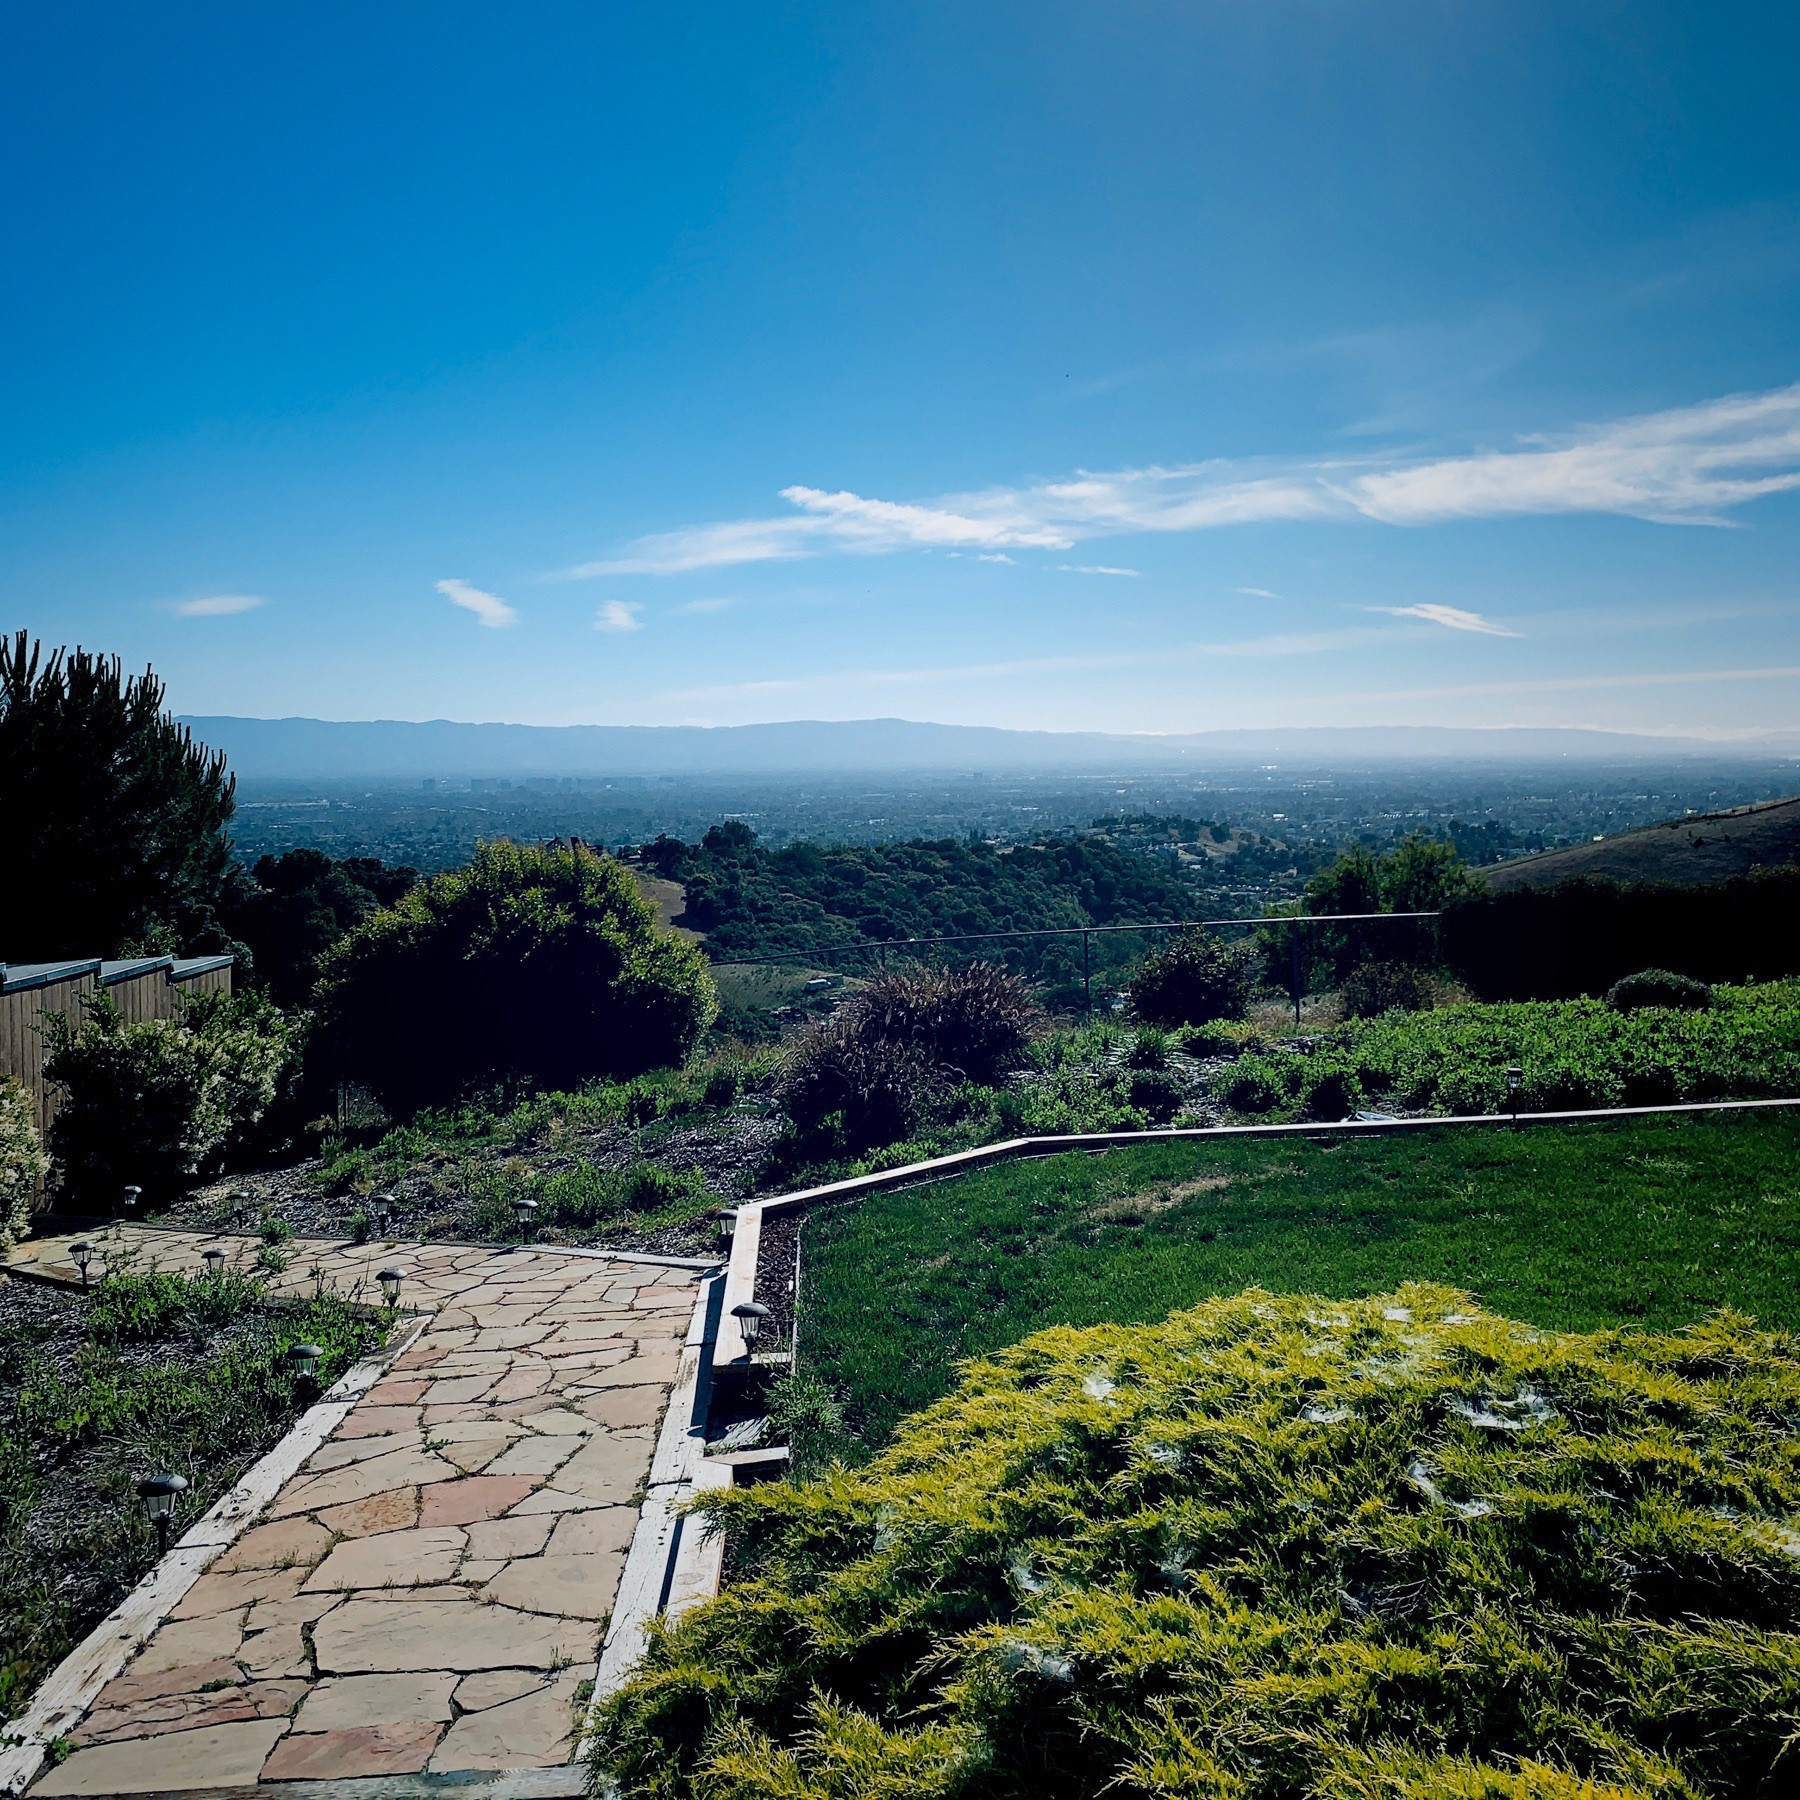 Landscape of the San Jose valley area with blue sky.